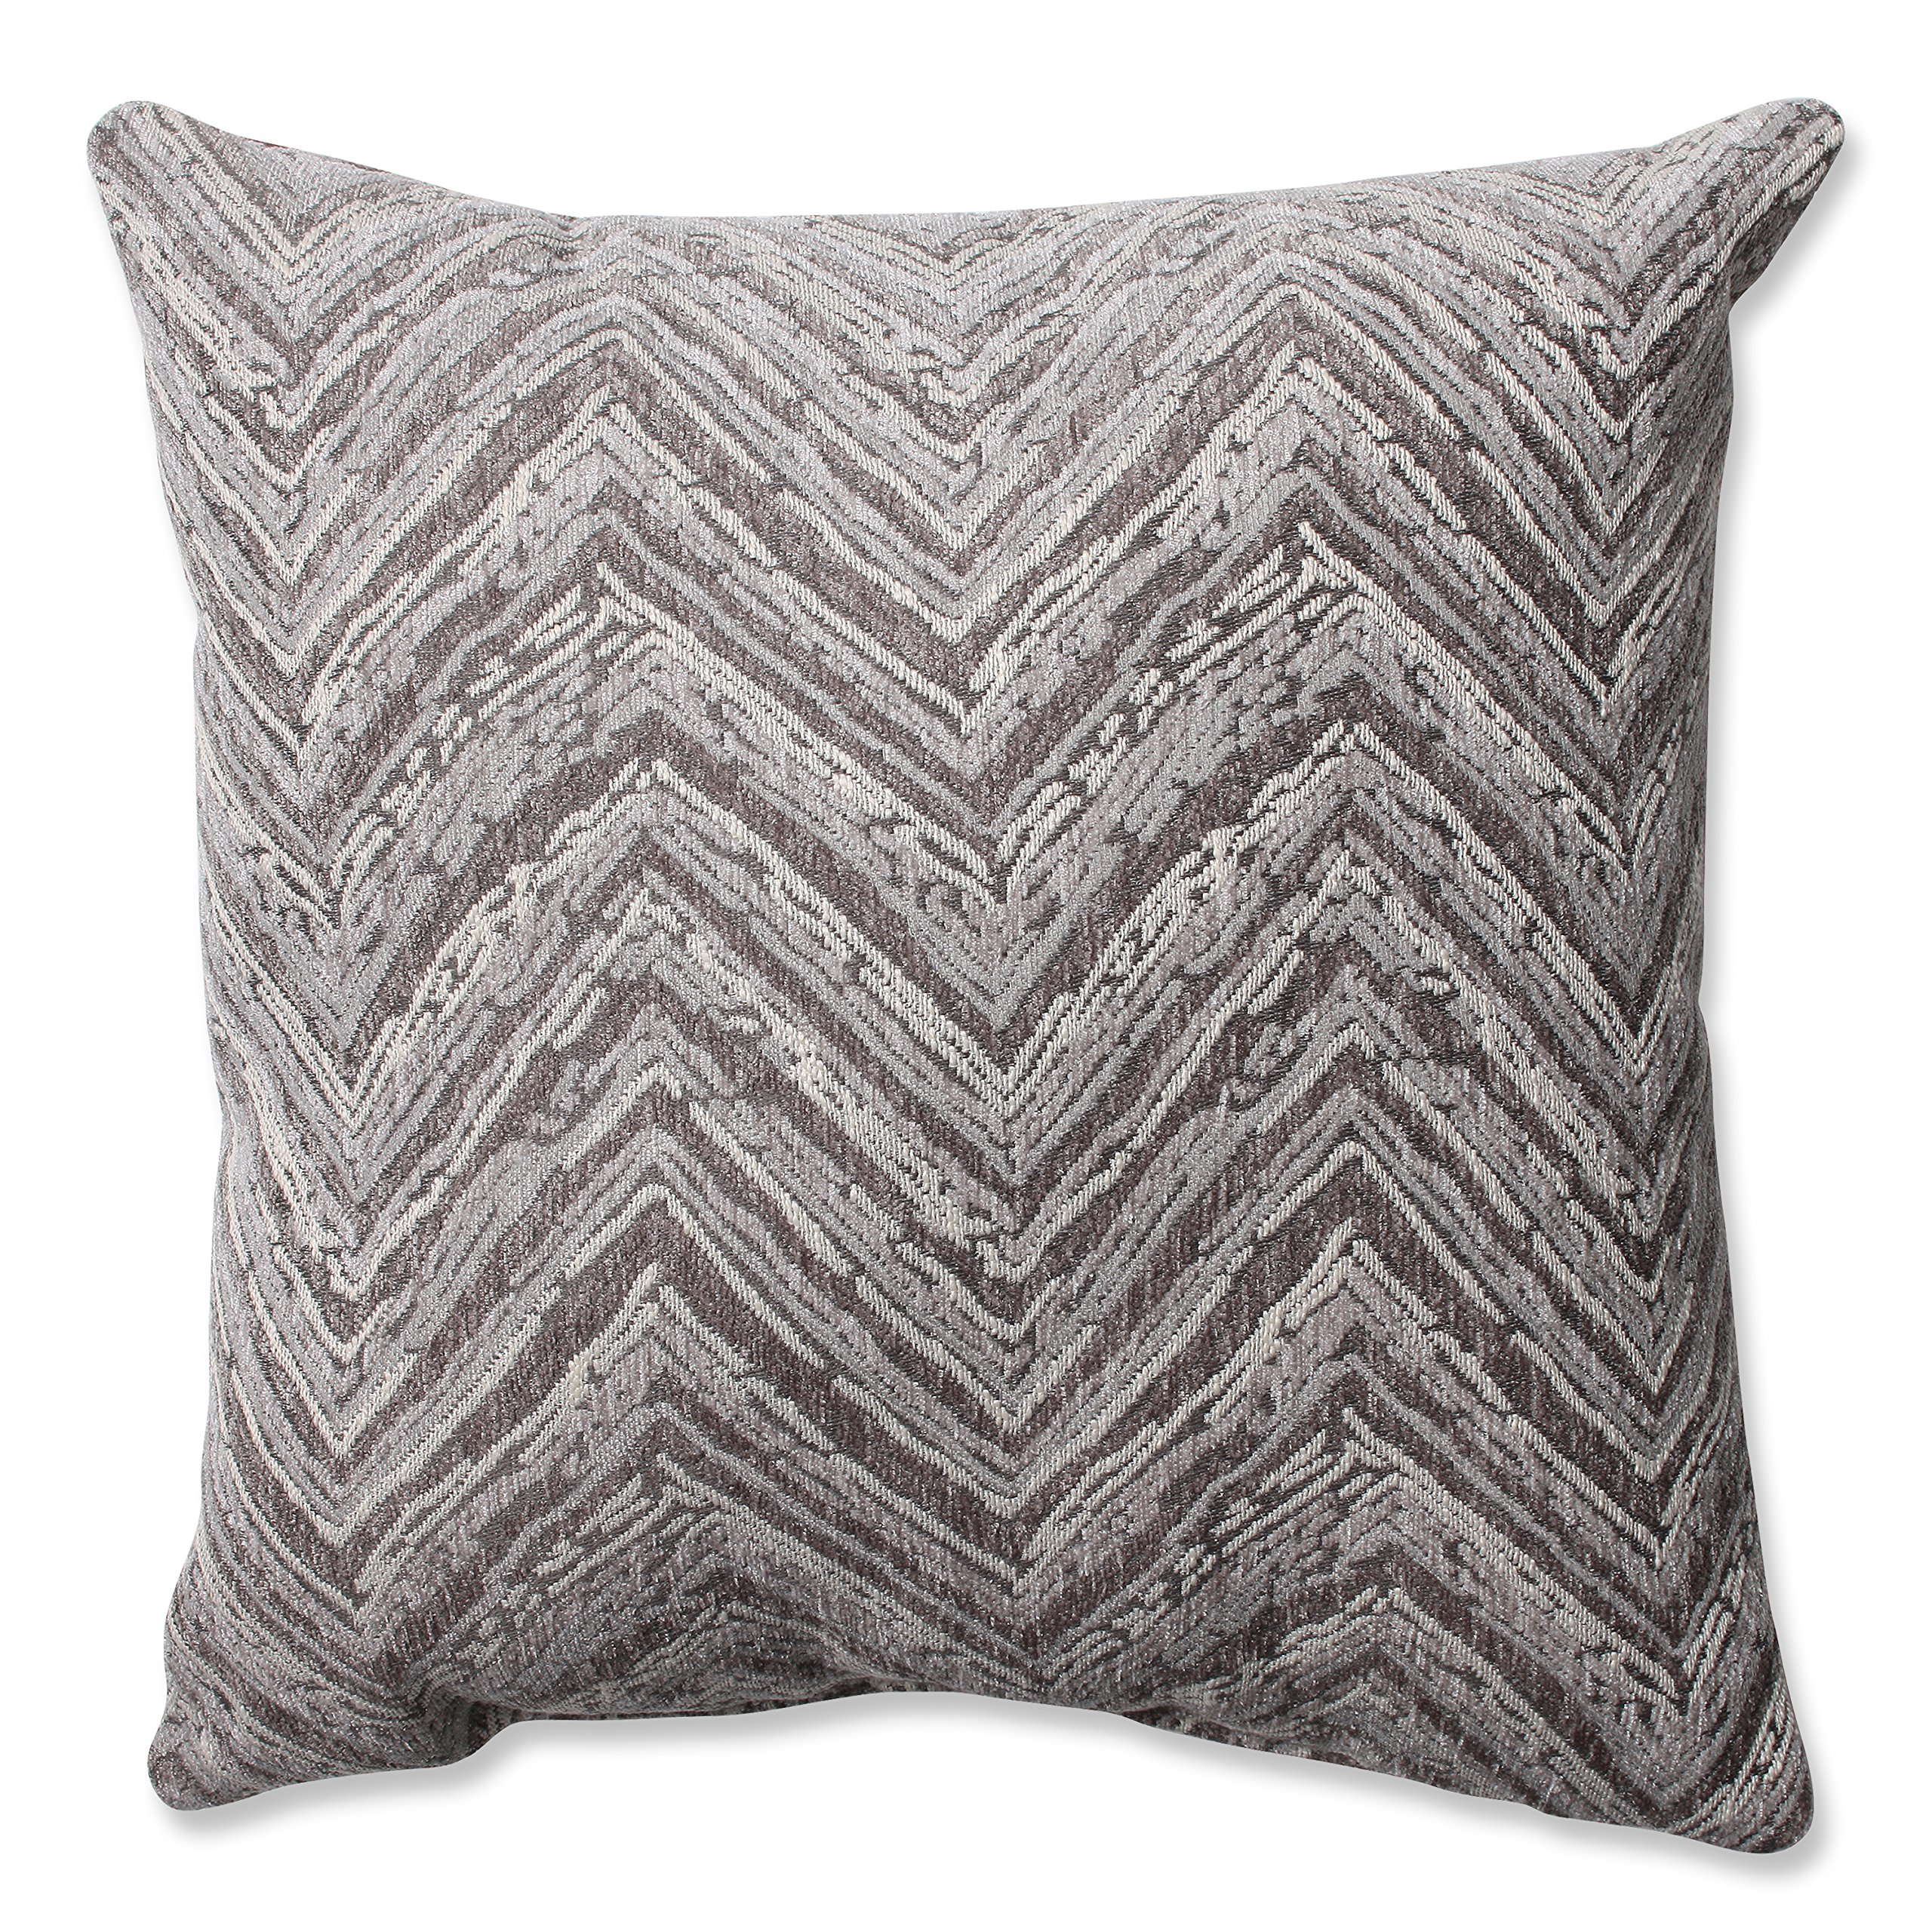 Pillow Perfect Union Driftwood Chenille Throw Pillow, 16.5-Inch